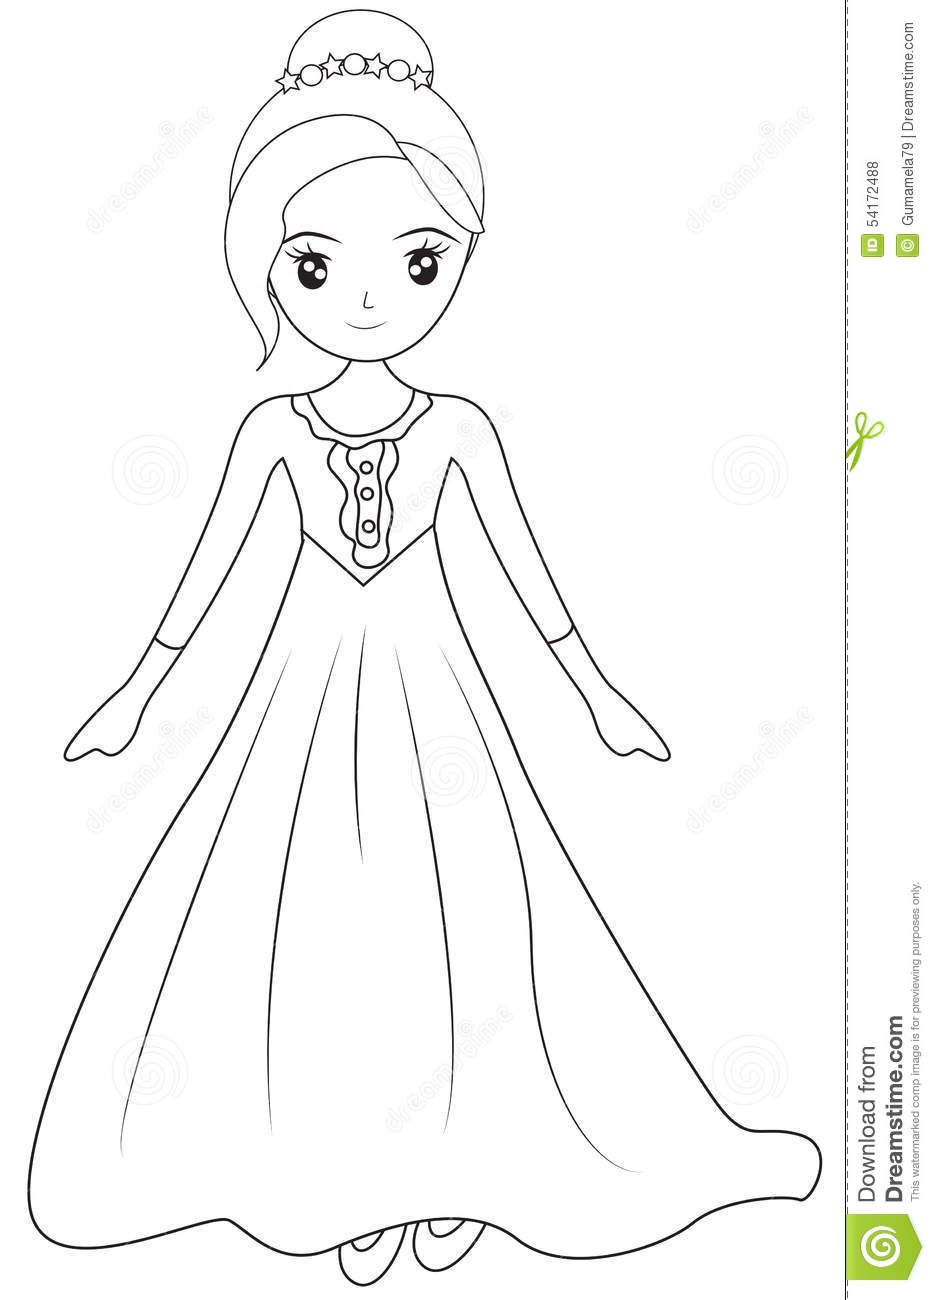 coloring page dress three dress coloring pages printable coloring page dress